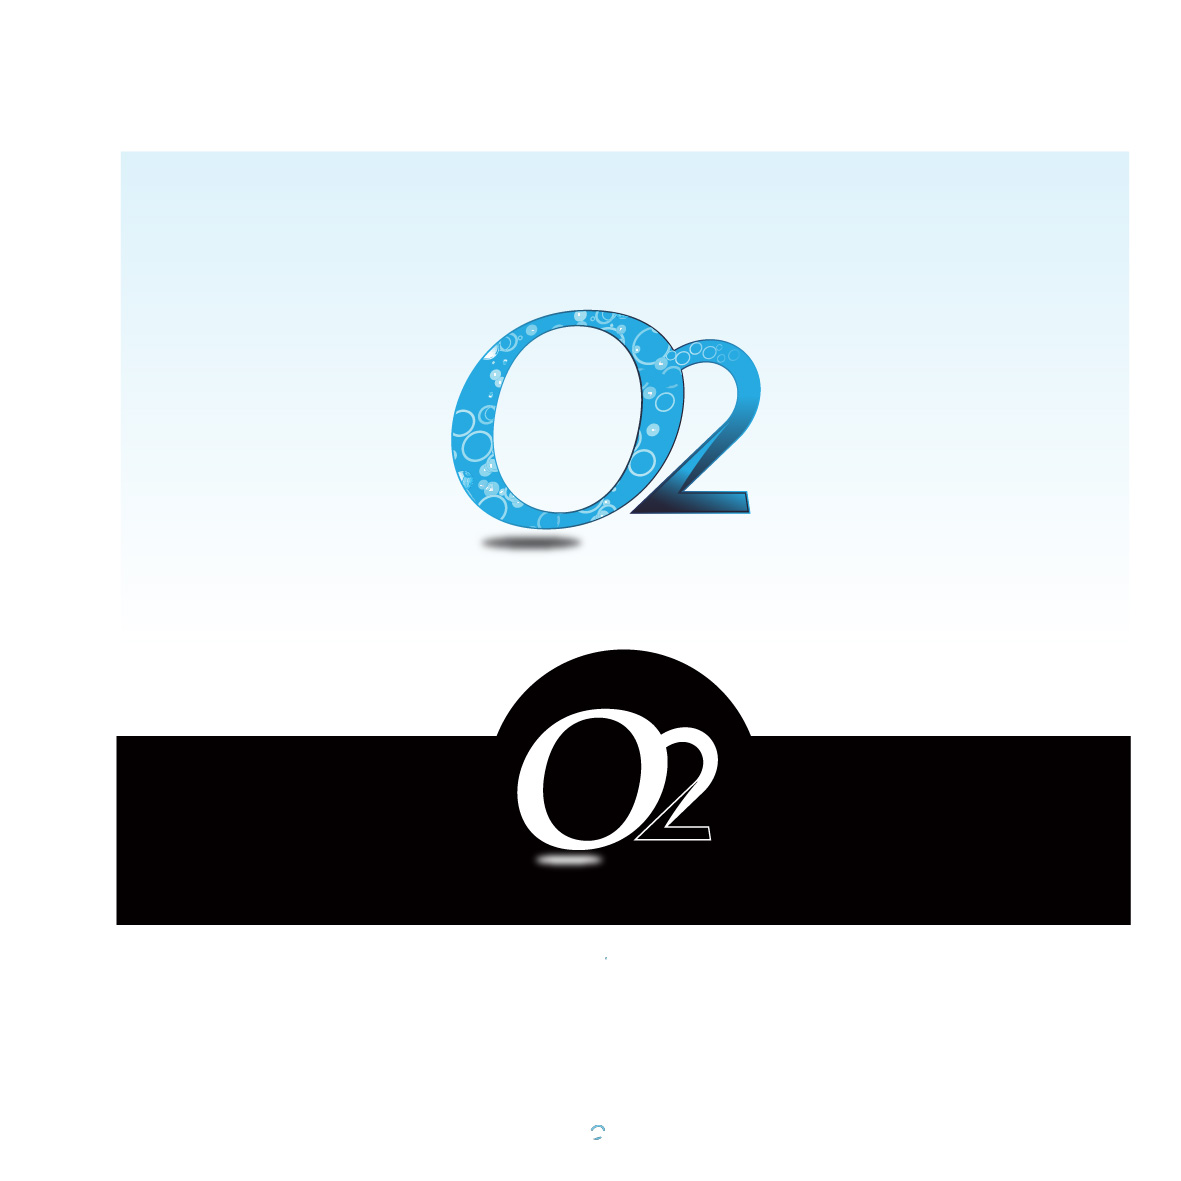 Logo Design by Robert Engi - Entry No. 97 in the Logo Design Contest Artistic Logo Design for O2.